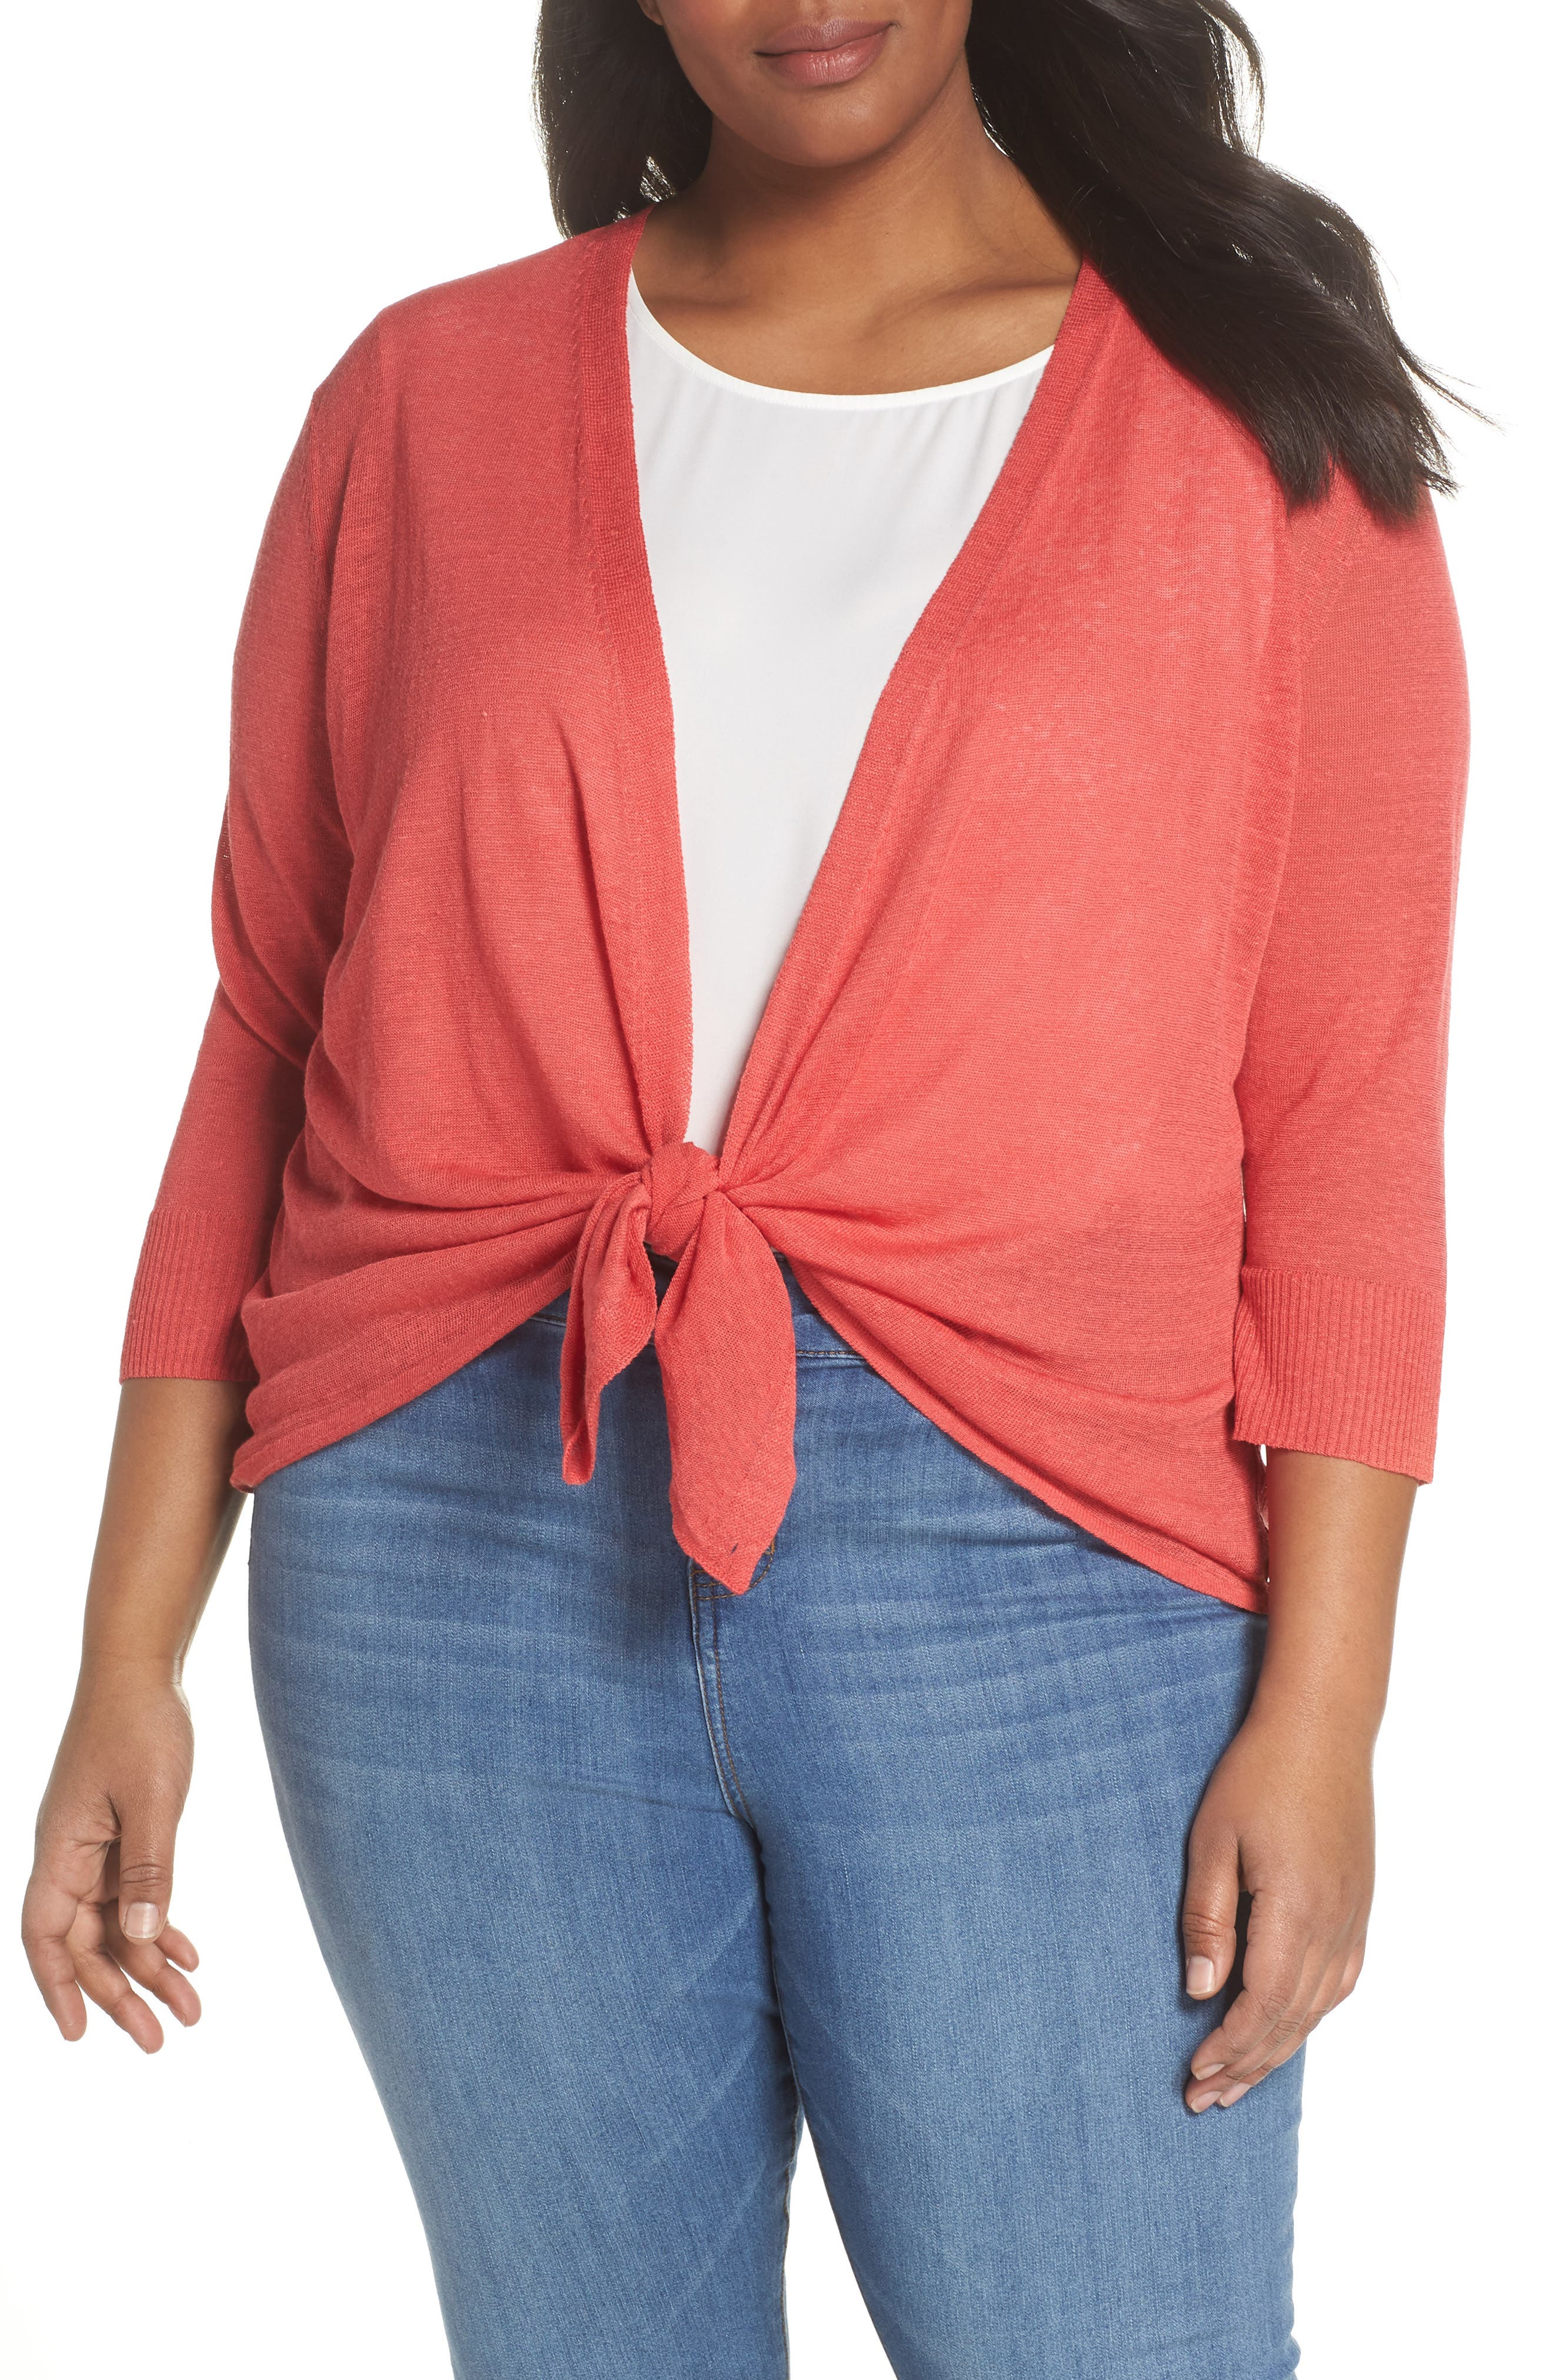 4-Way Convertible Three Quarter Sleeve Cardigan,                             Alternate thumbnail 2, color,                             Spiced Rose